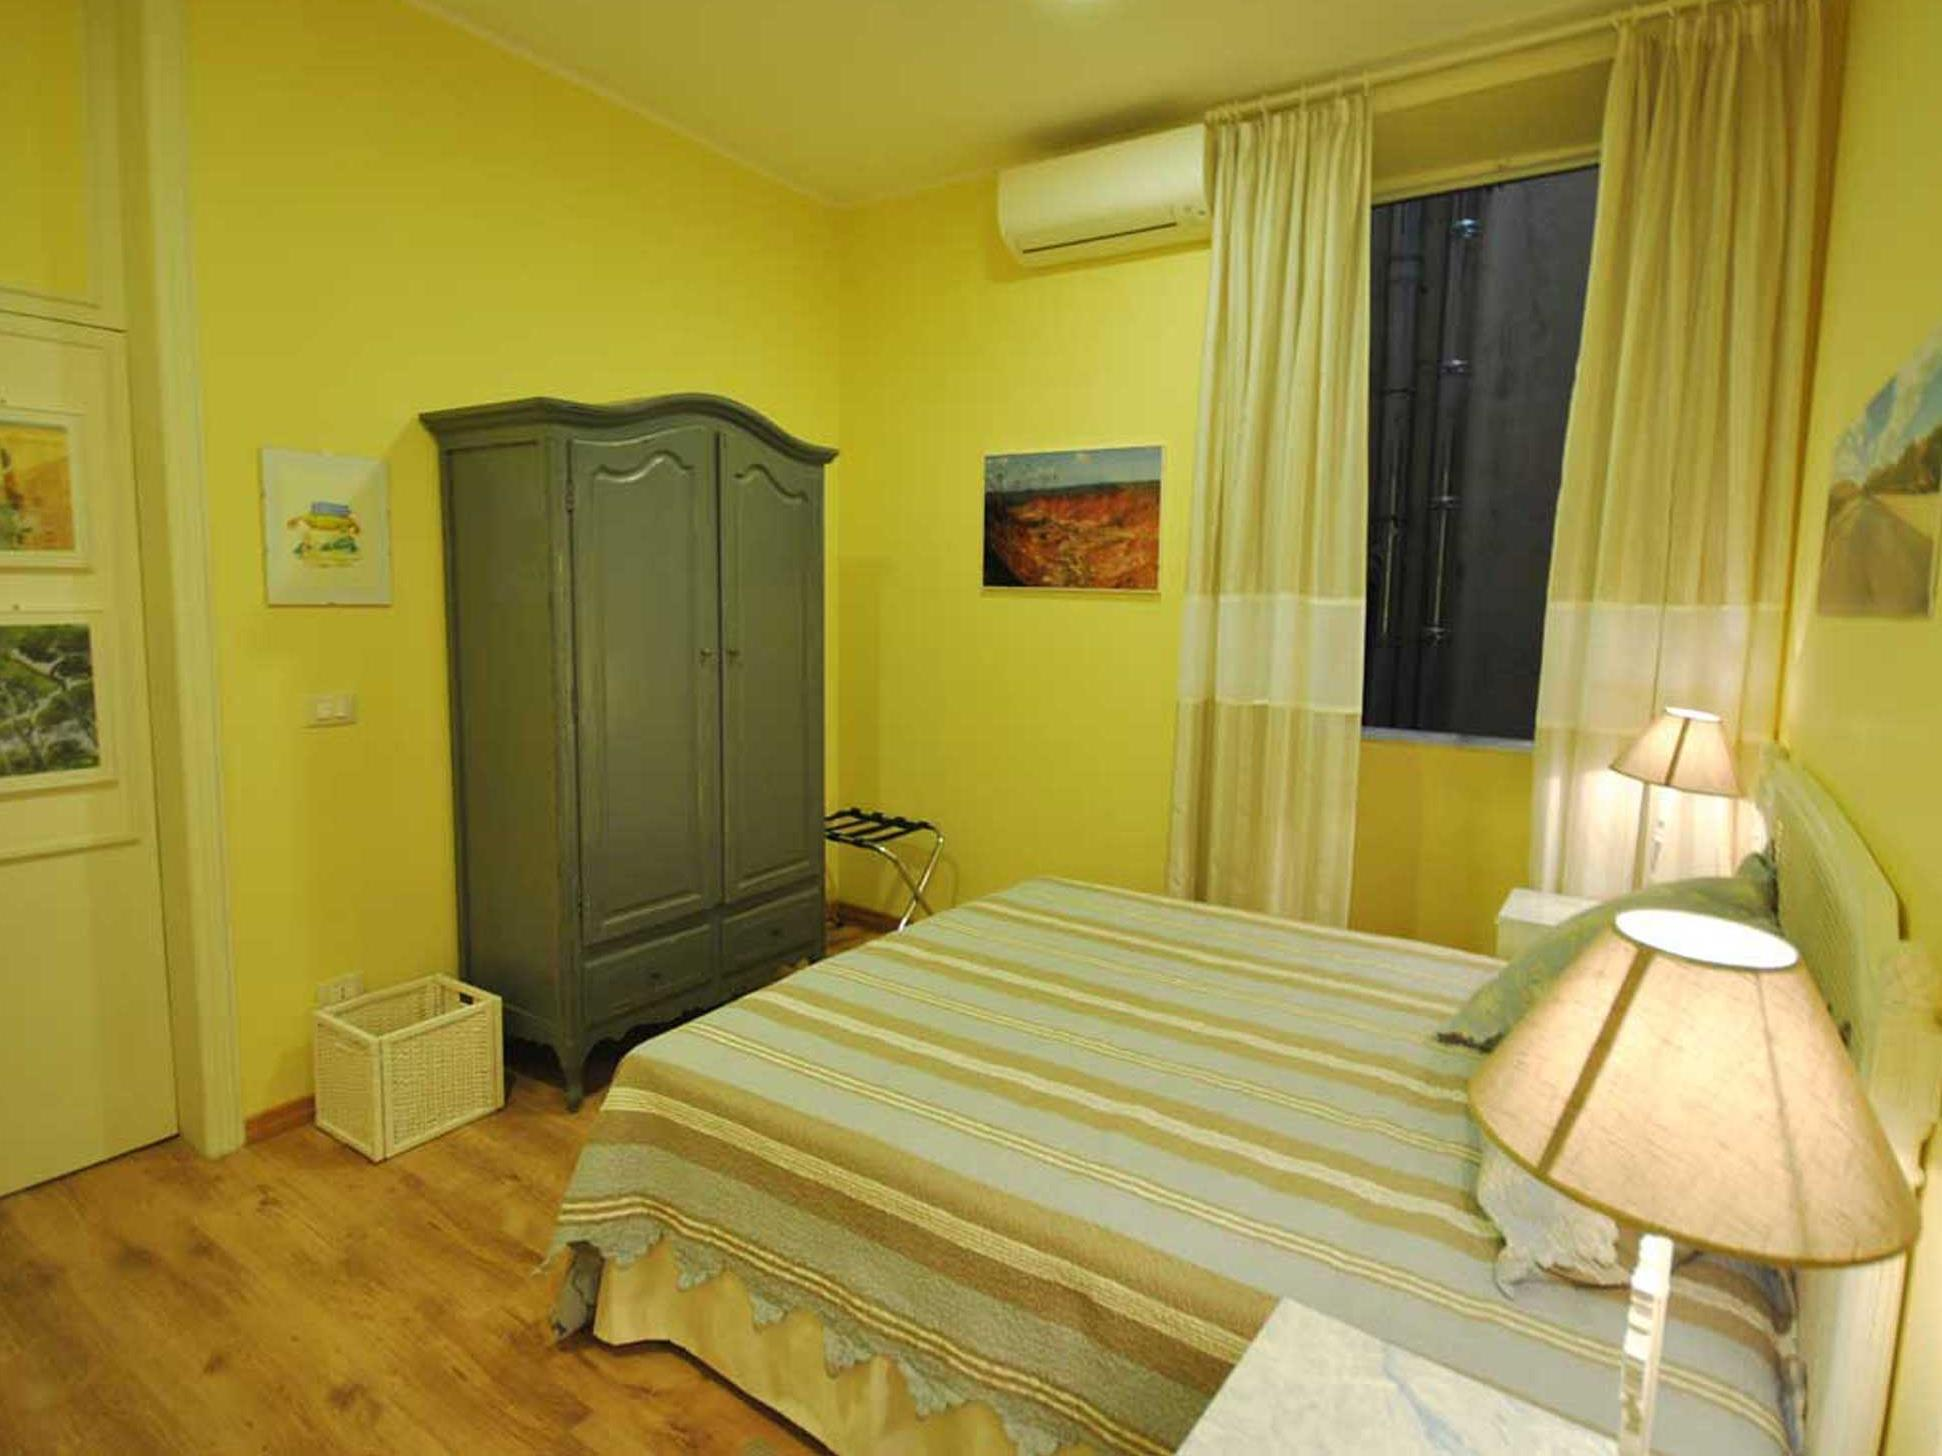 Cameră dublă, cu baie internă (Double Room with Internal Bathroom)